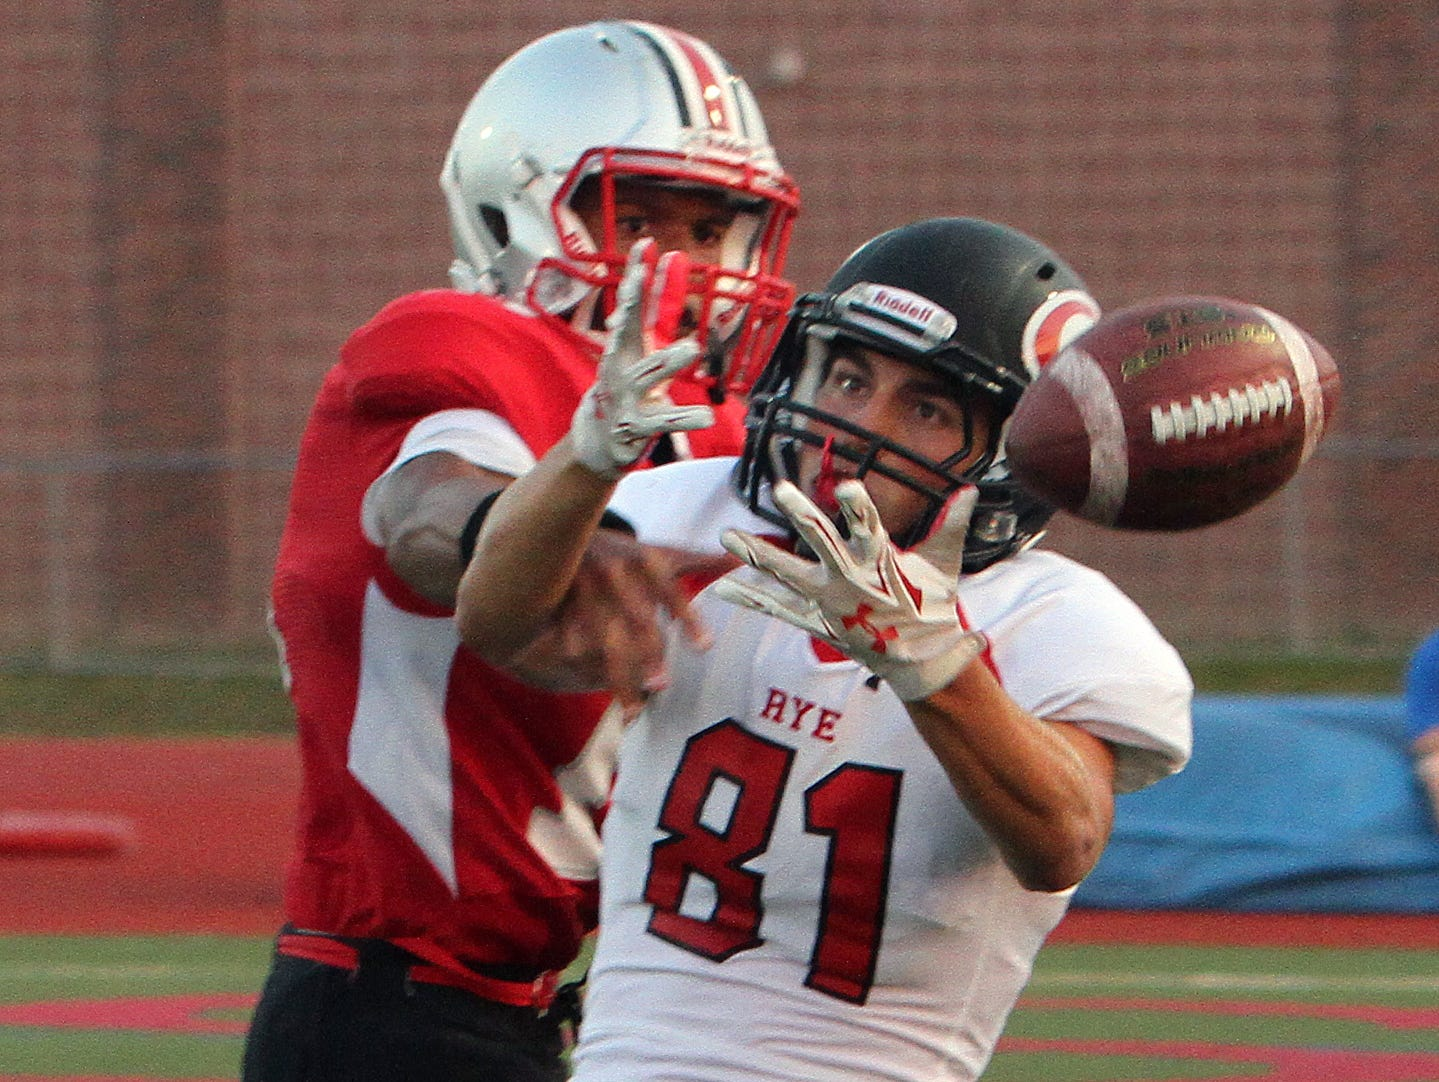 Somers's Jason Holland (11) breaks up a pass intended for Rye's Brett Egan (81) during first half action at Somers High School Sept. 4, 2015